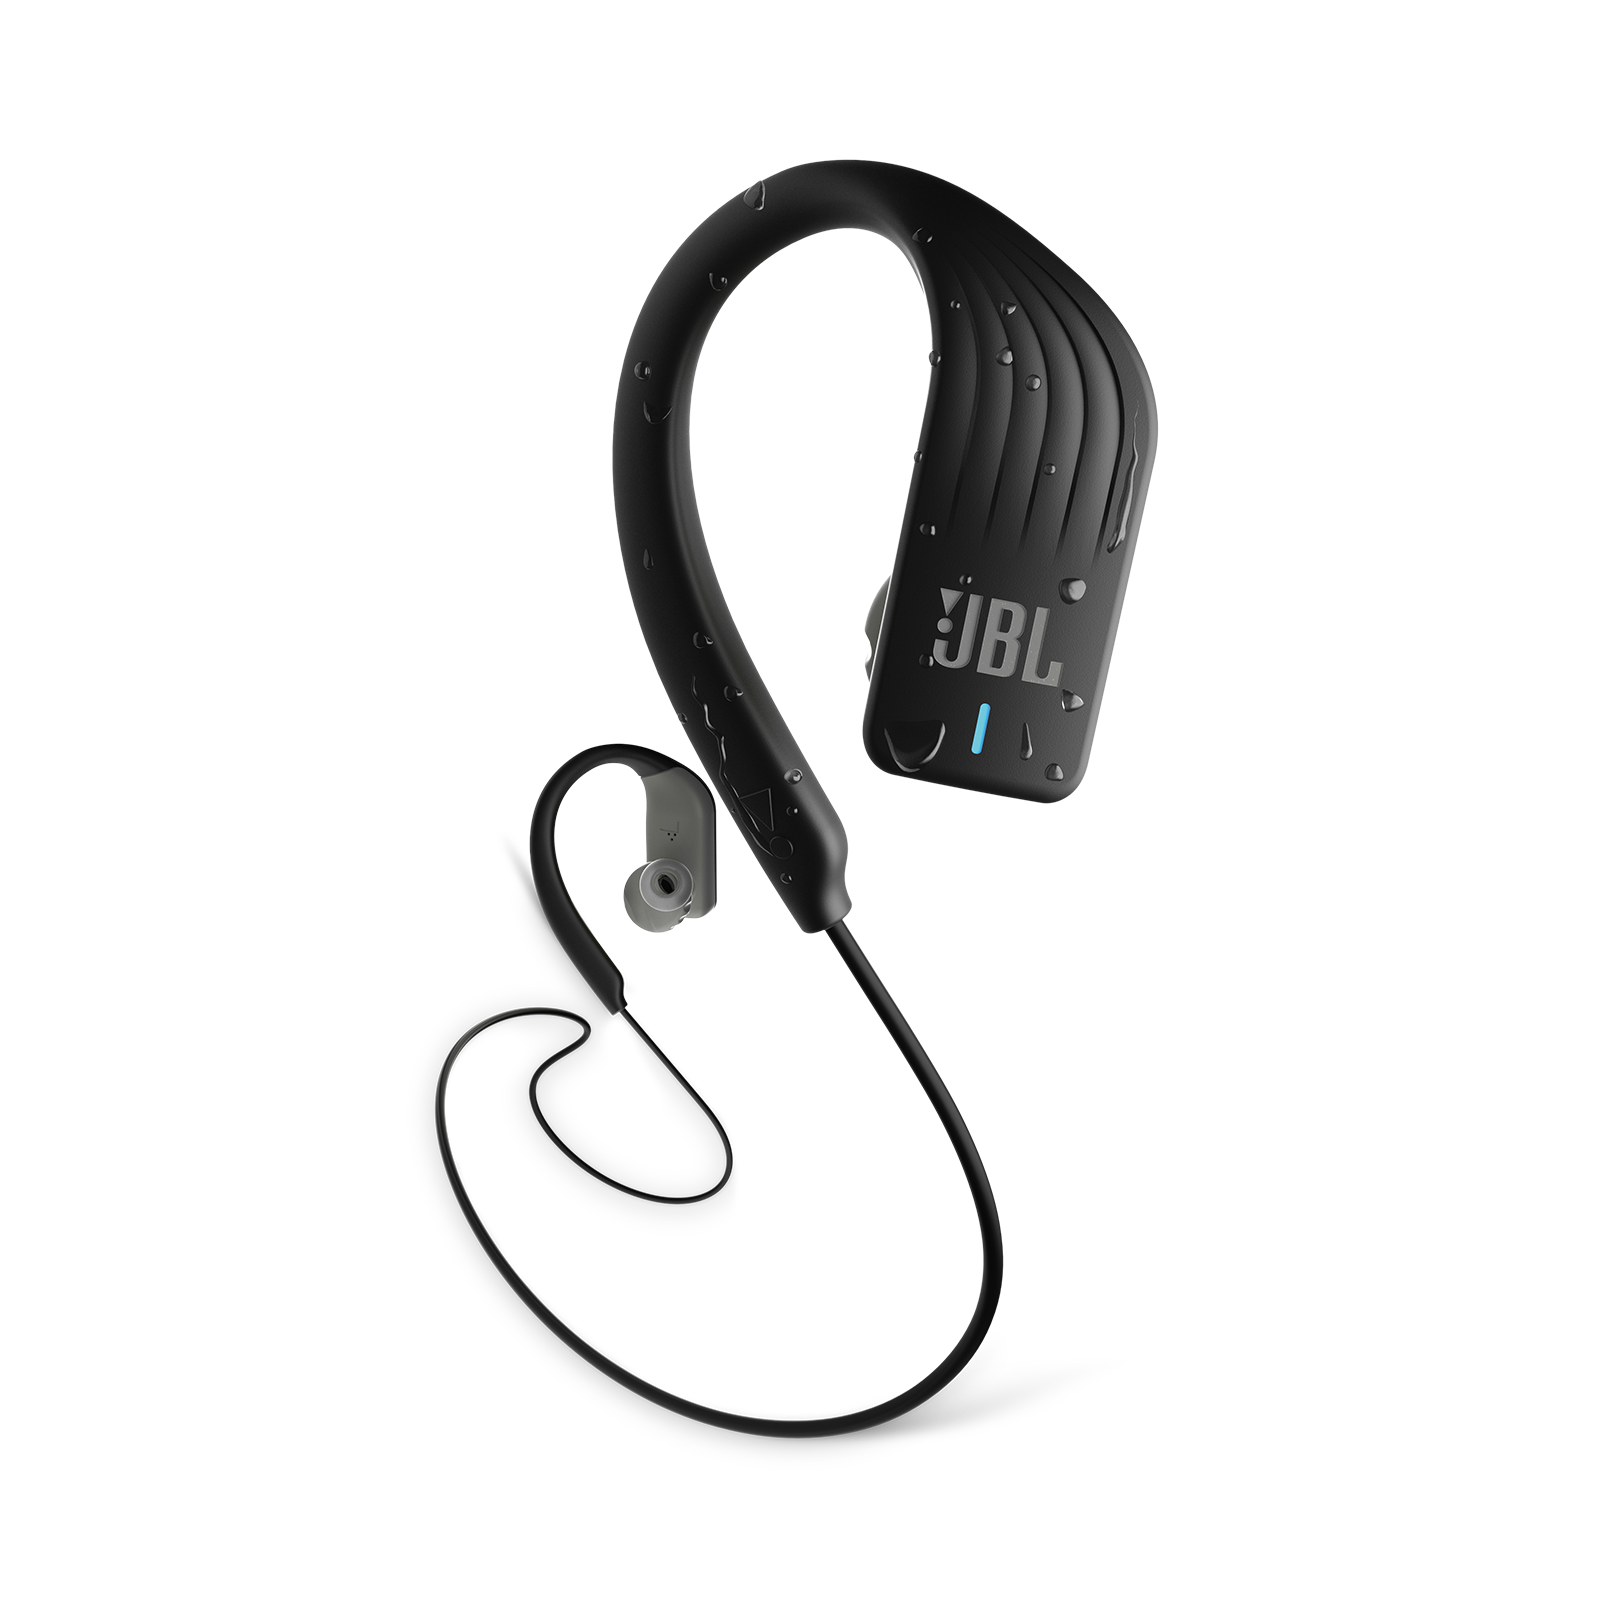 JBL Endurance SPRINT Black